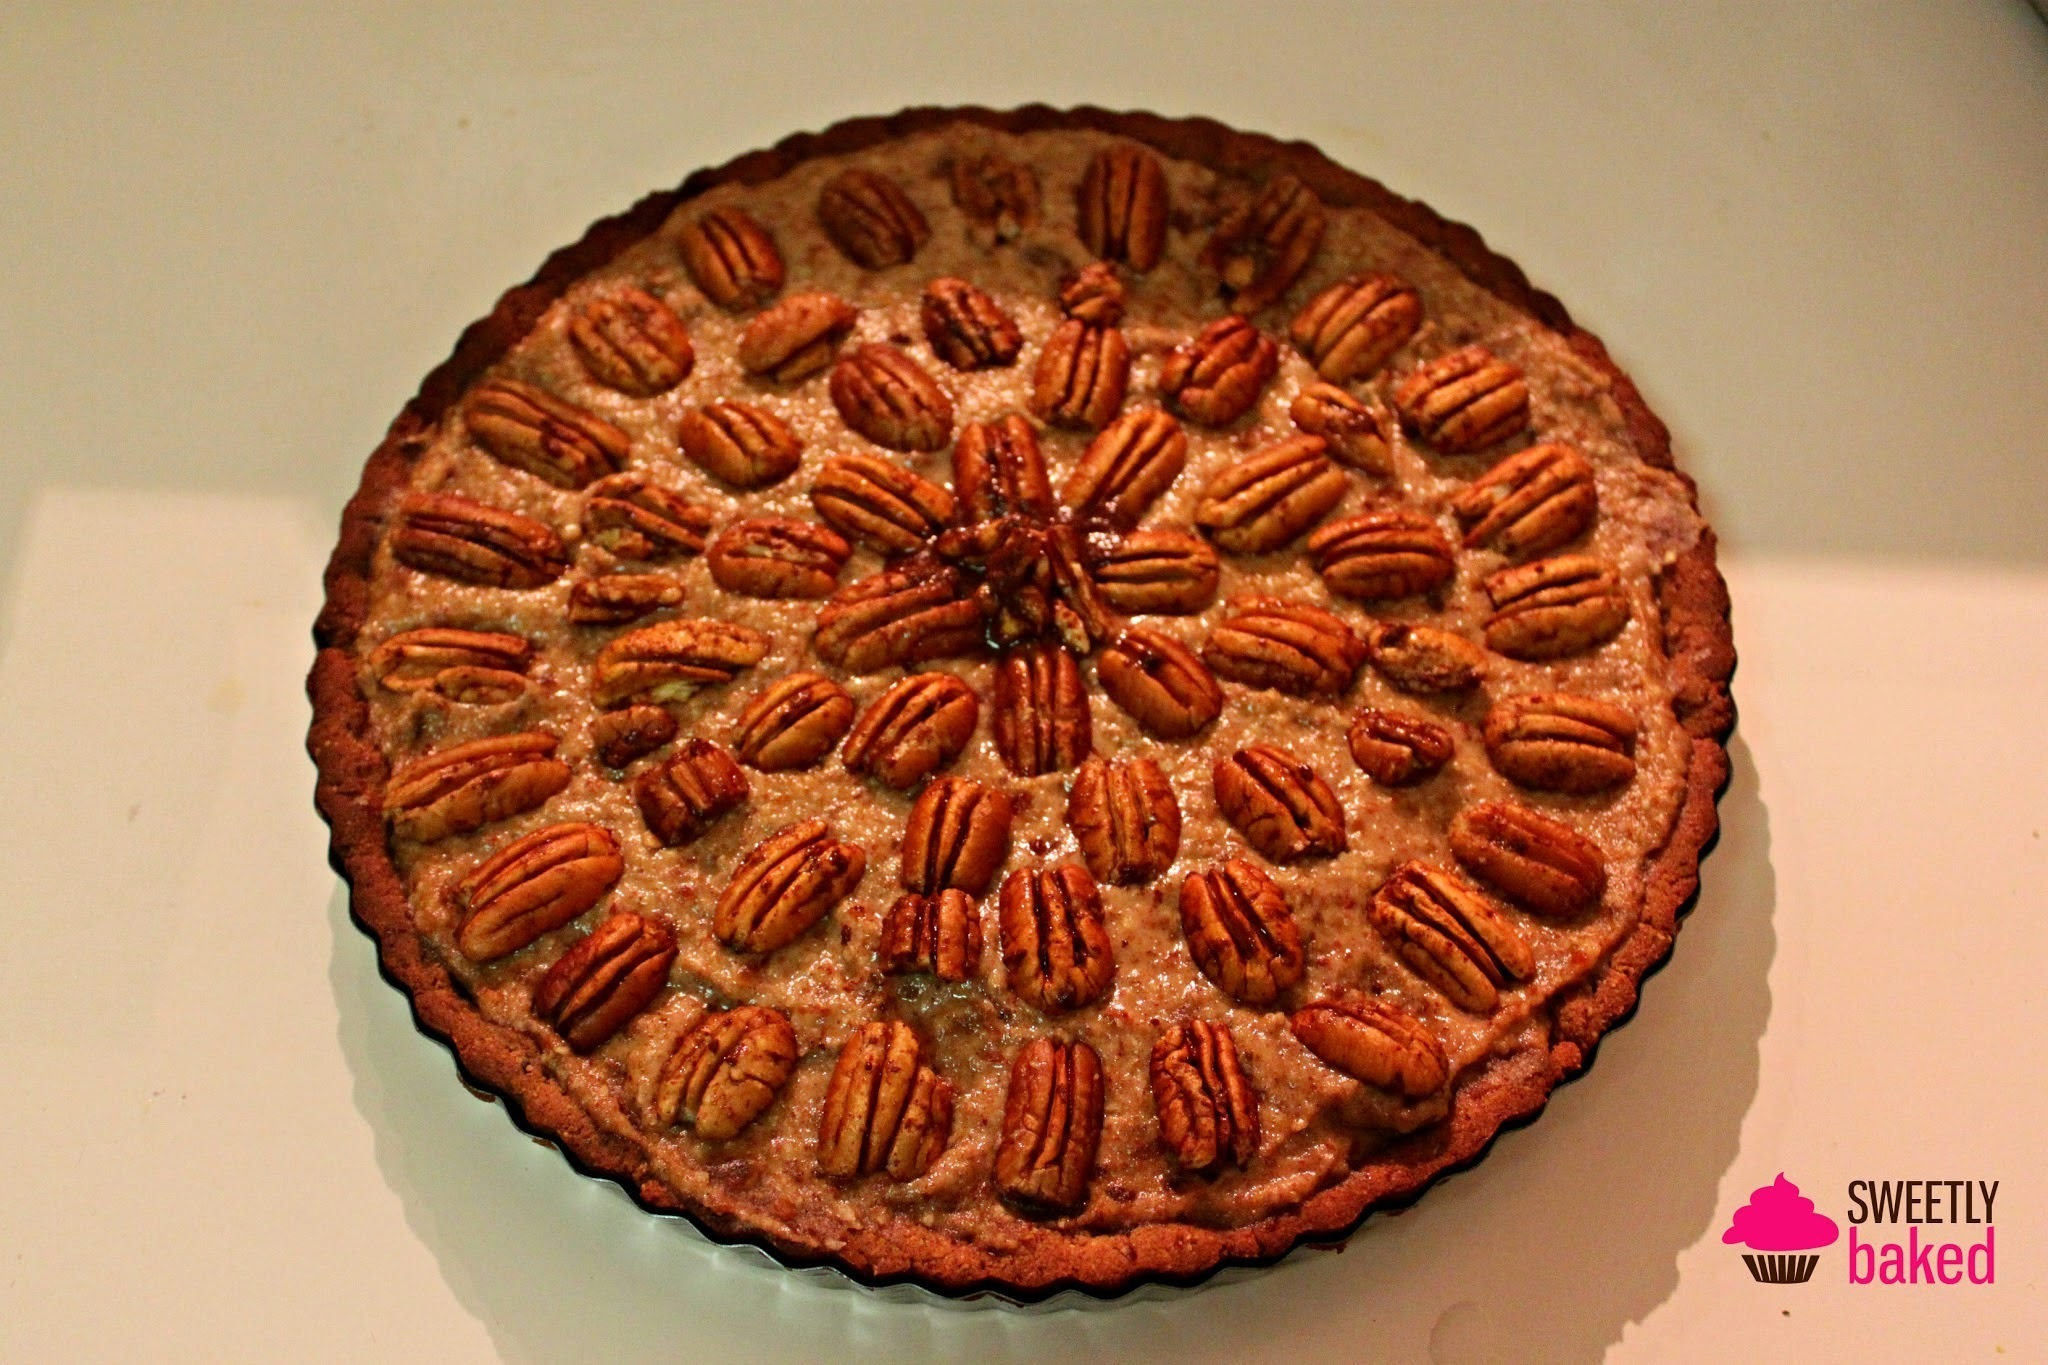 Recipe of the Week - Pecan Pie